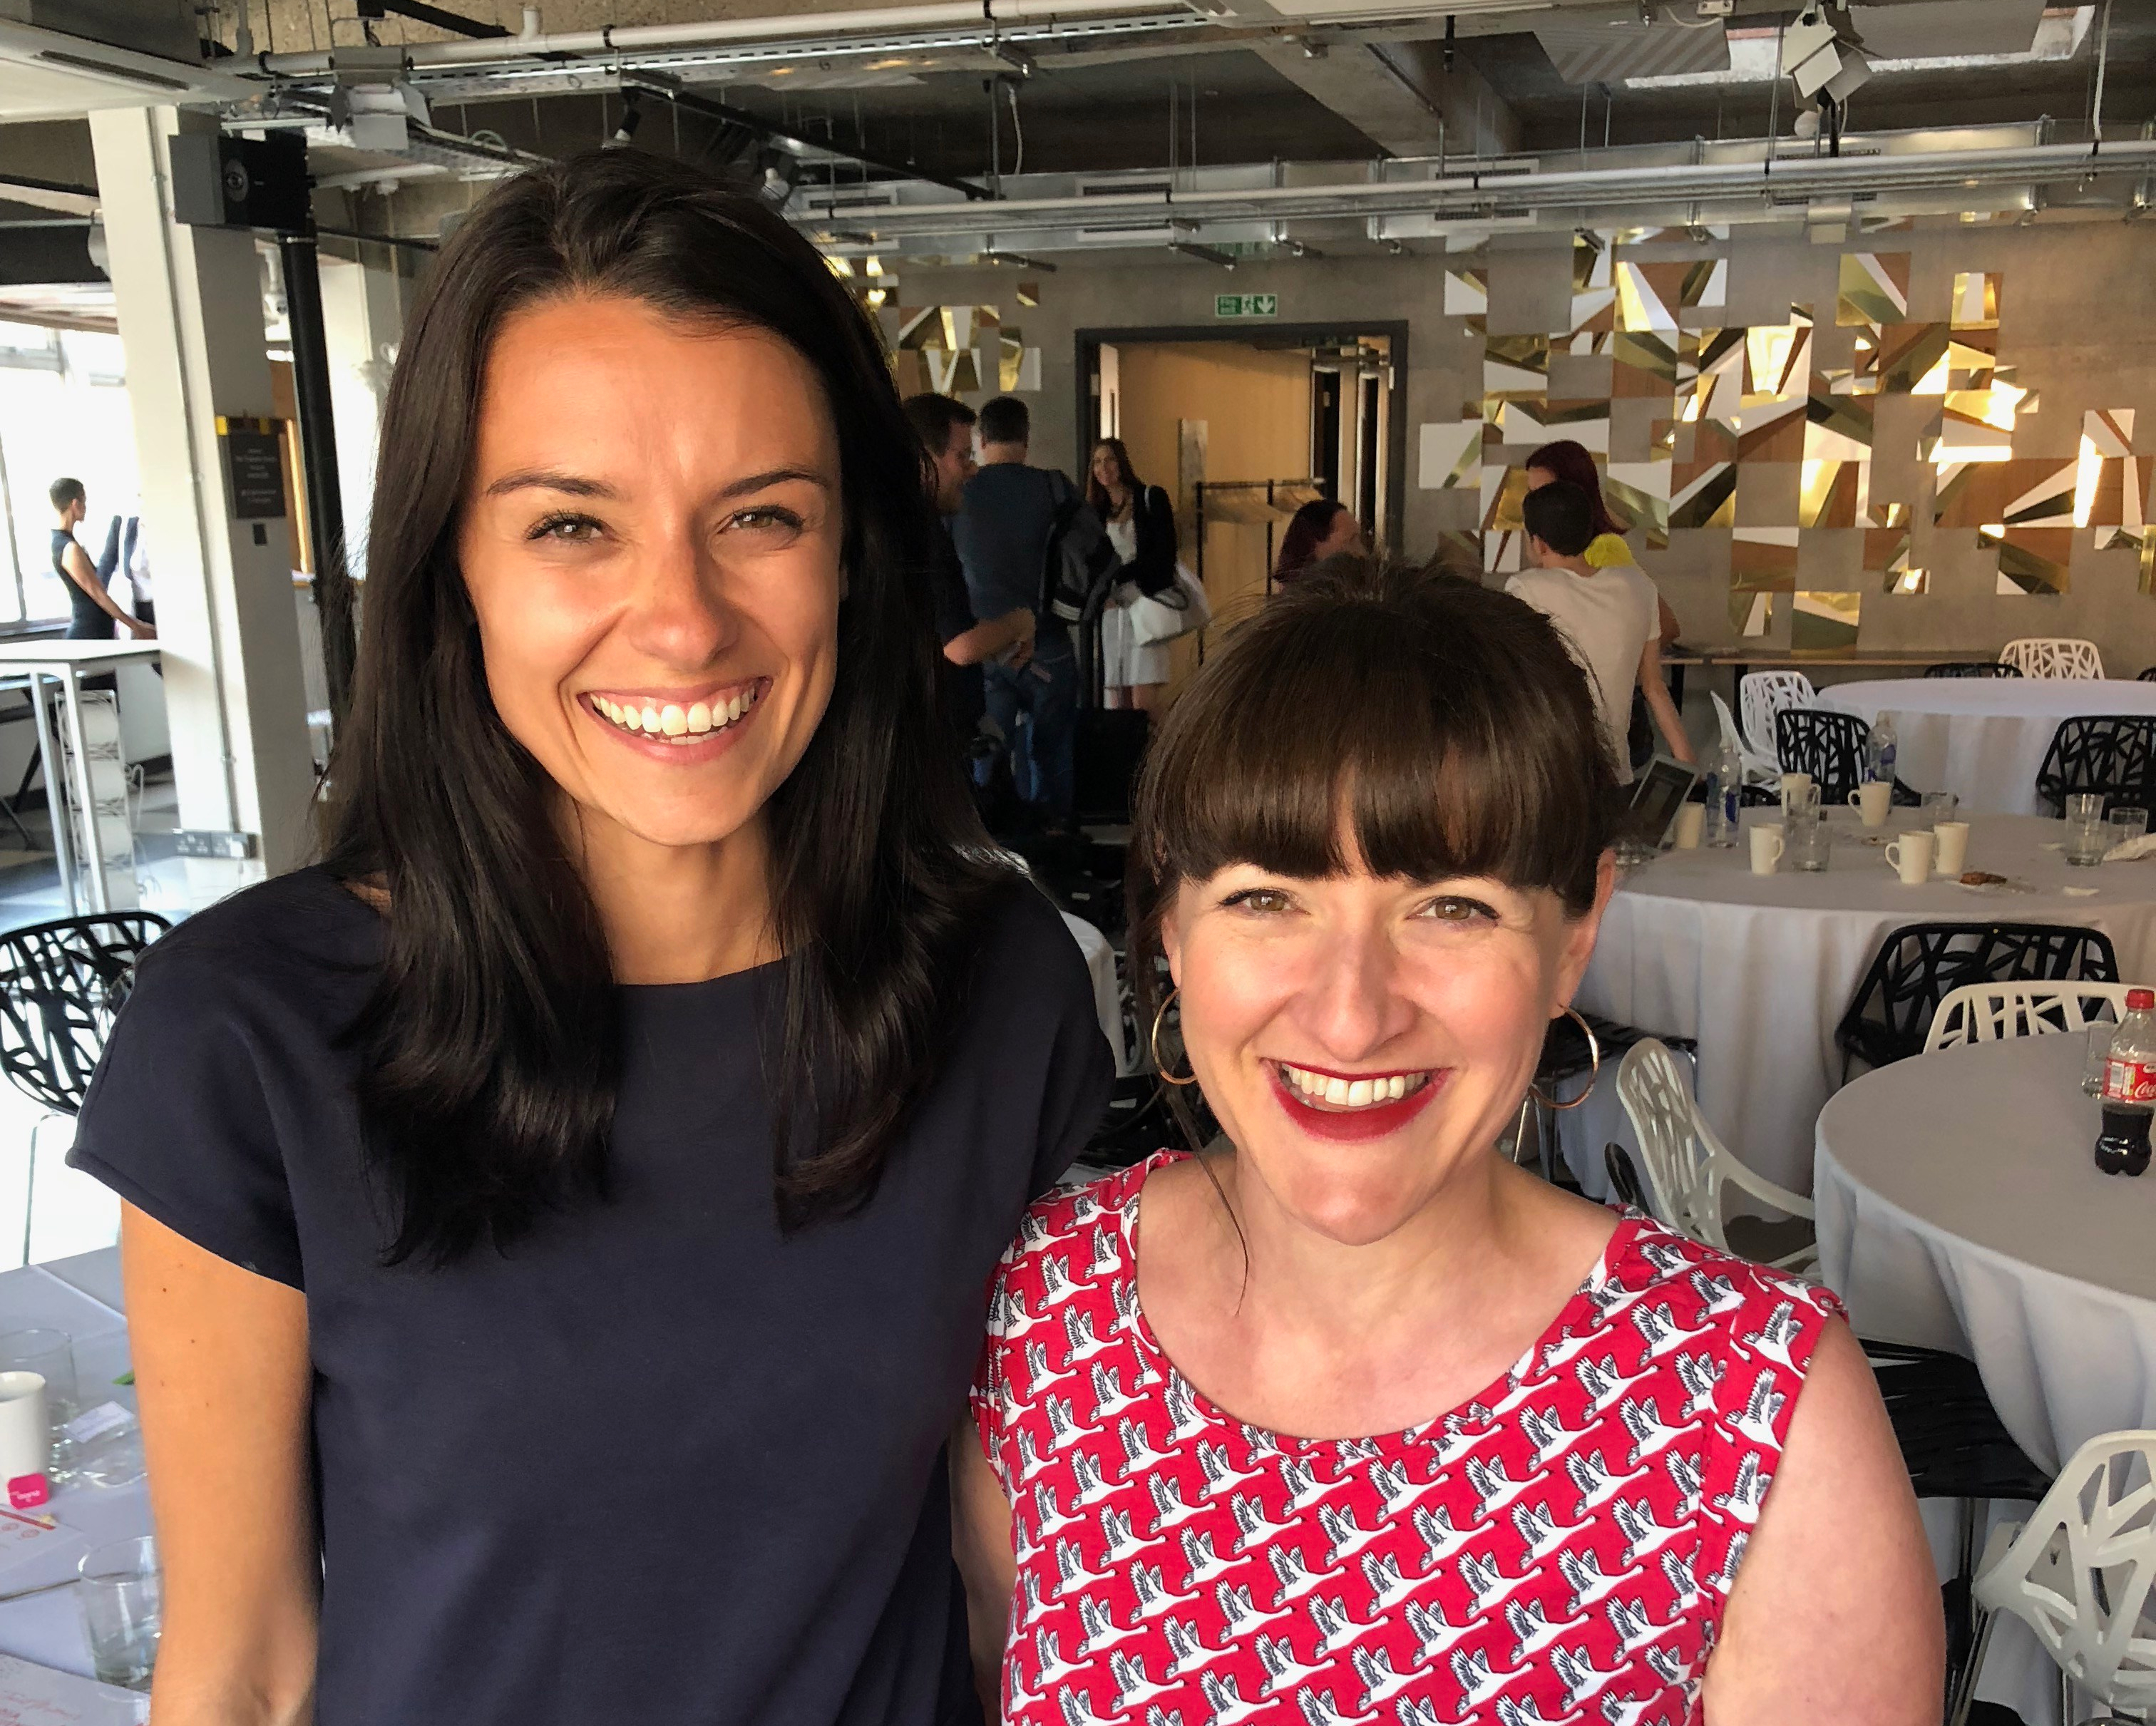 Jessica Dante and Janine Coombes at Media Influence Live 2018